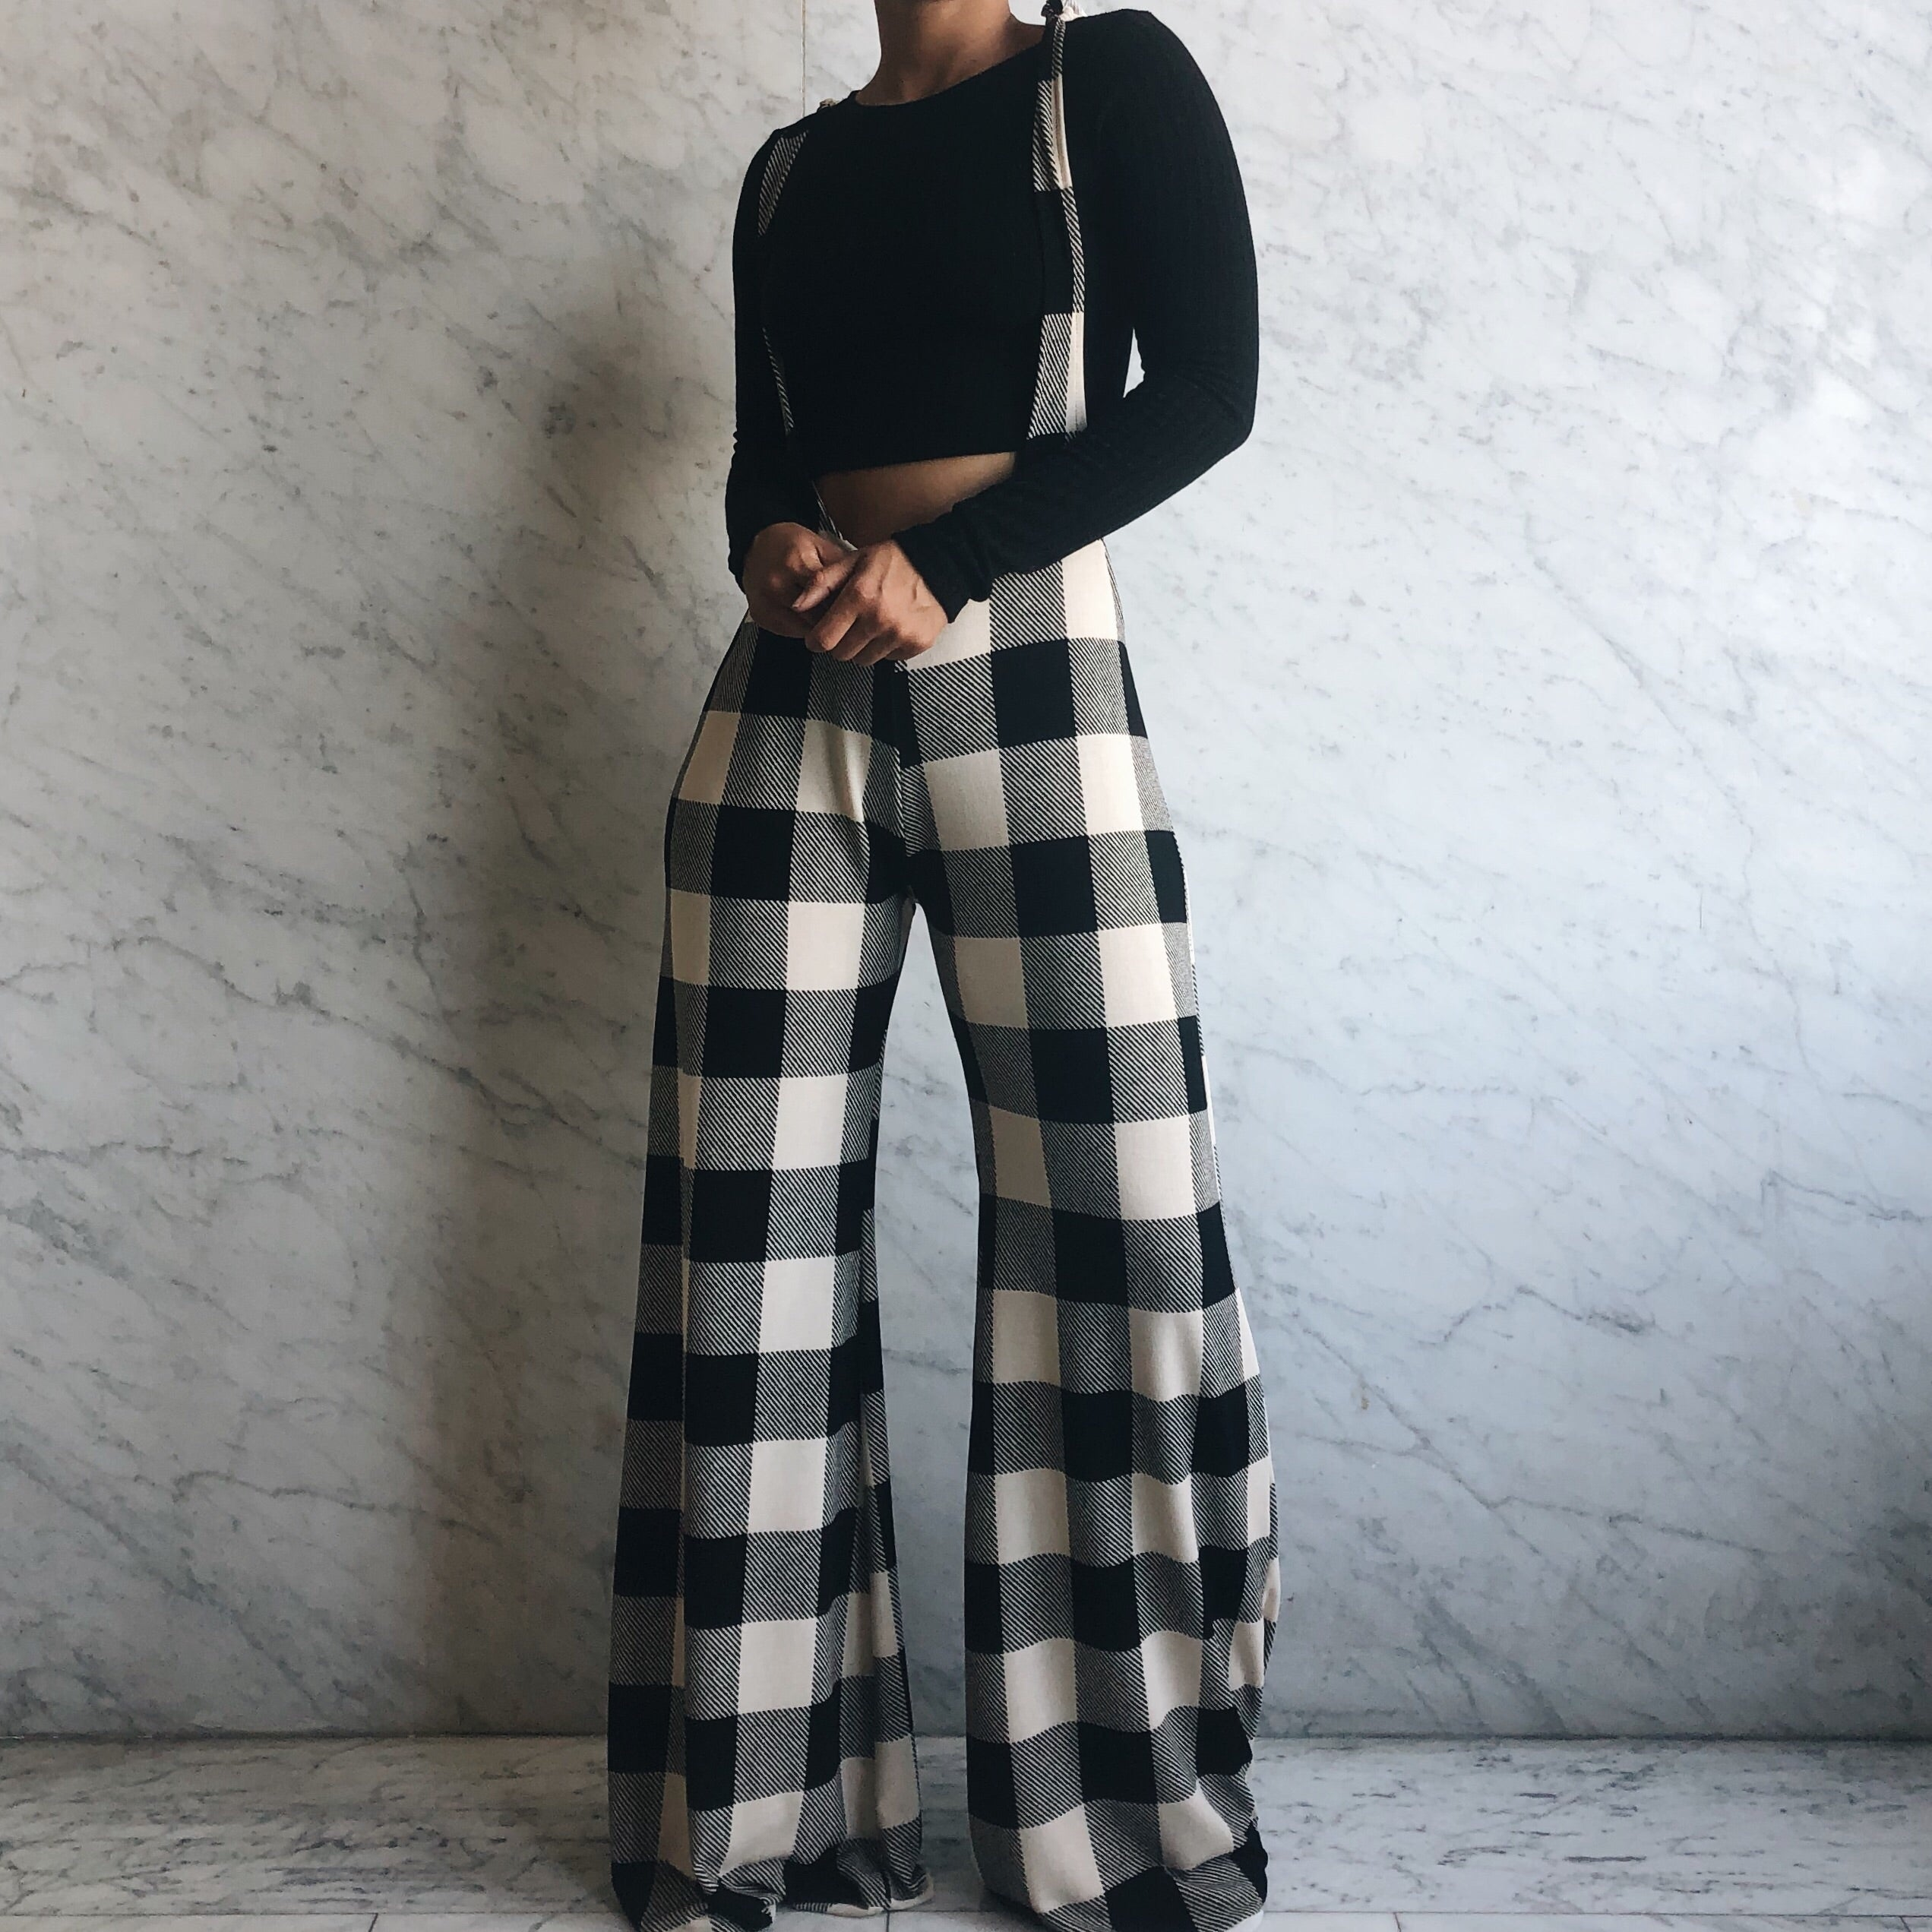 Louvre Jumper Set